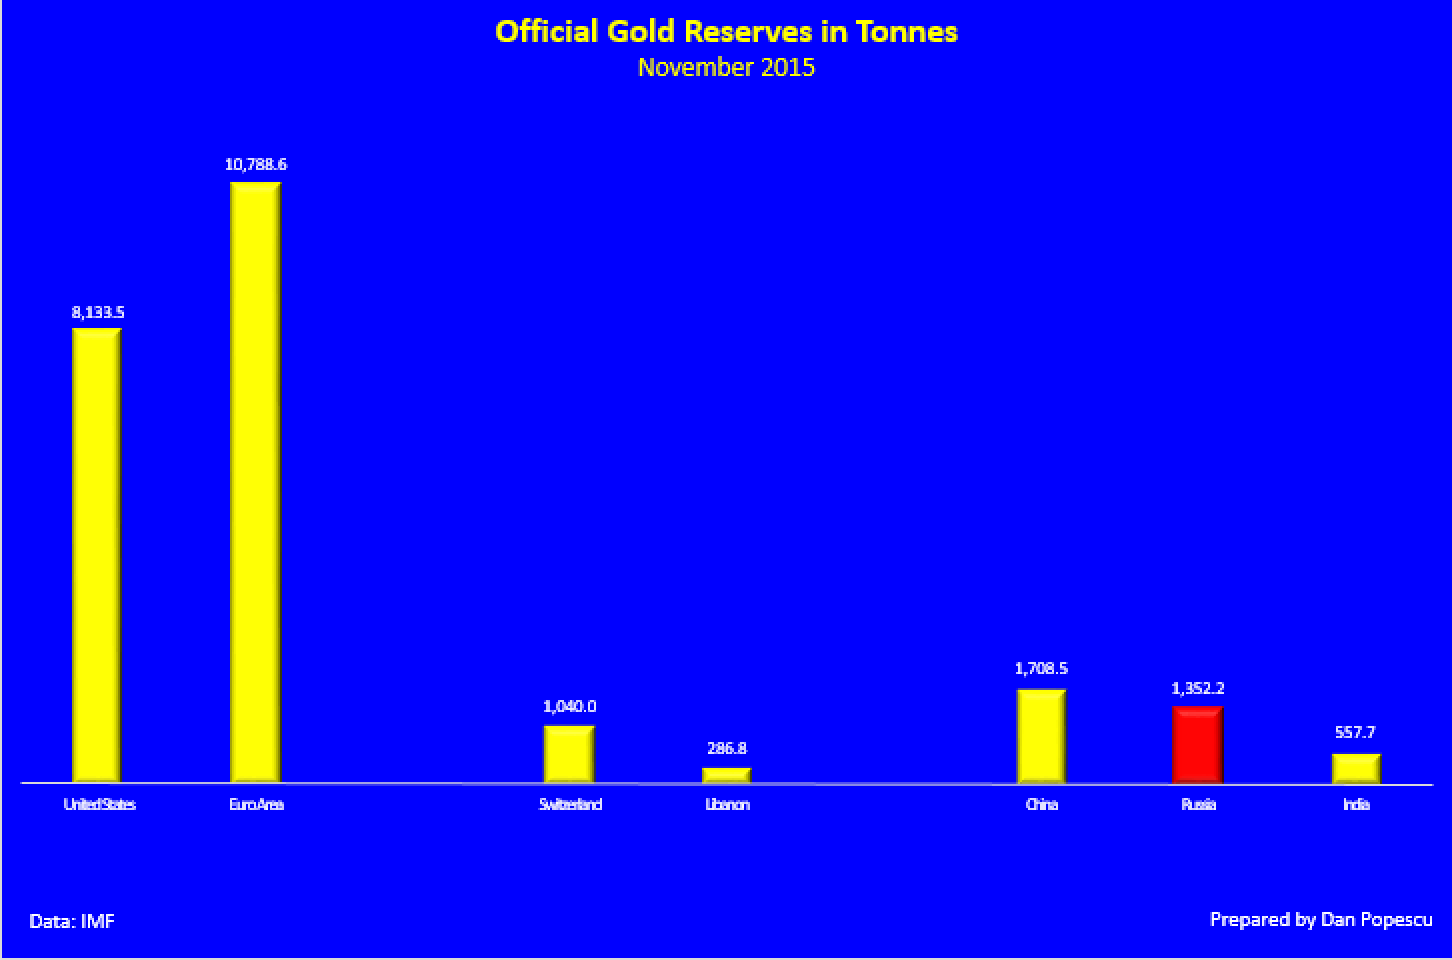 Official gold reserves in tonnes